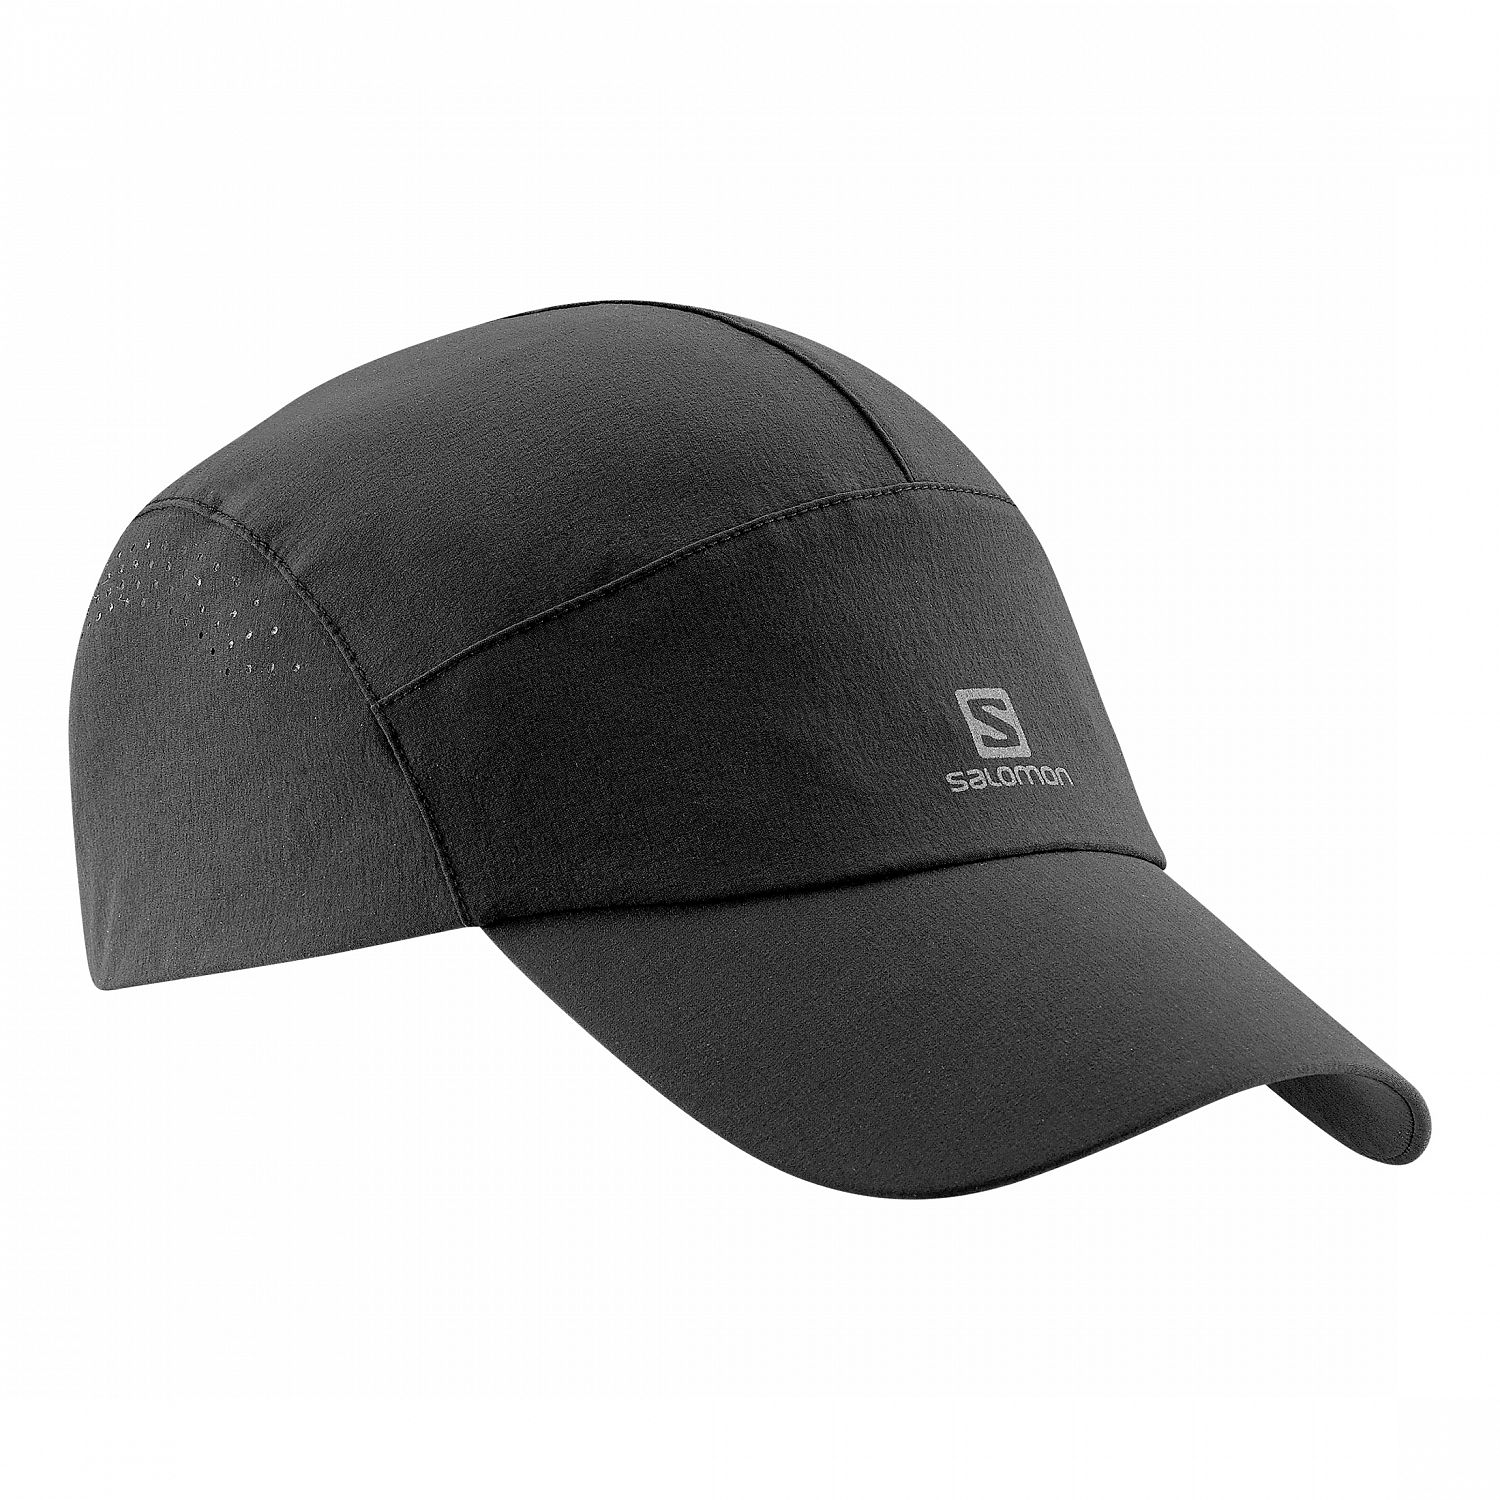 Salomon Softshell Cap black